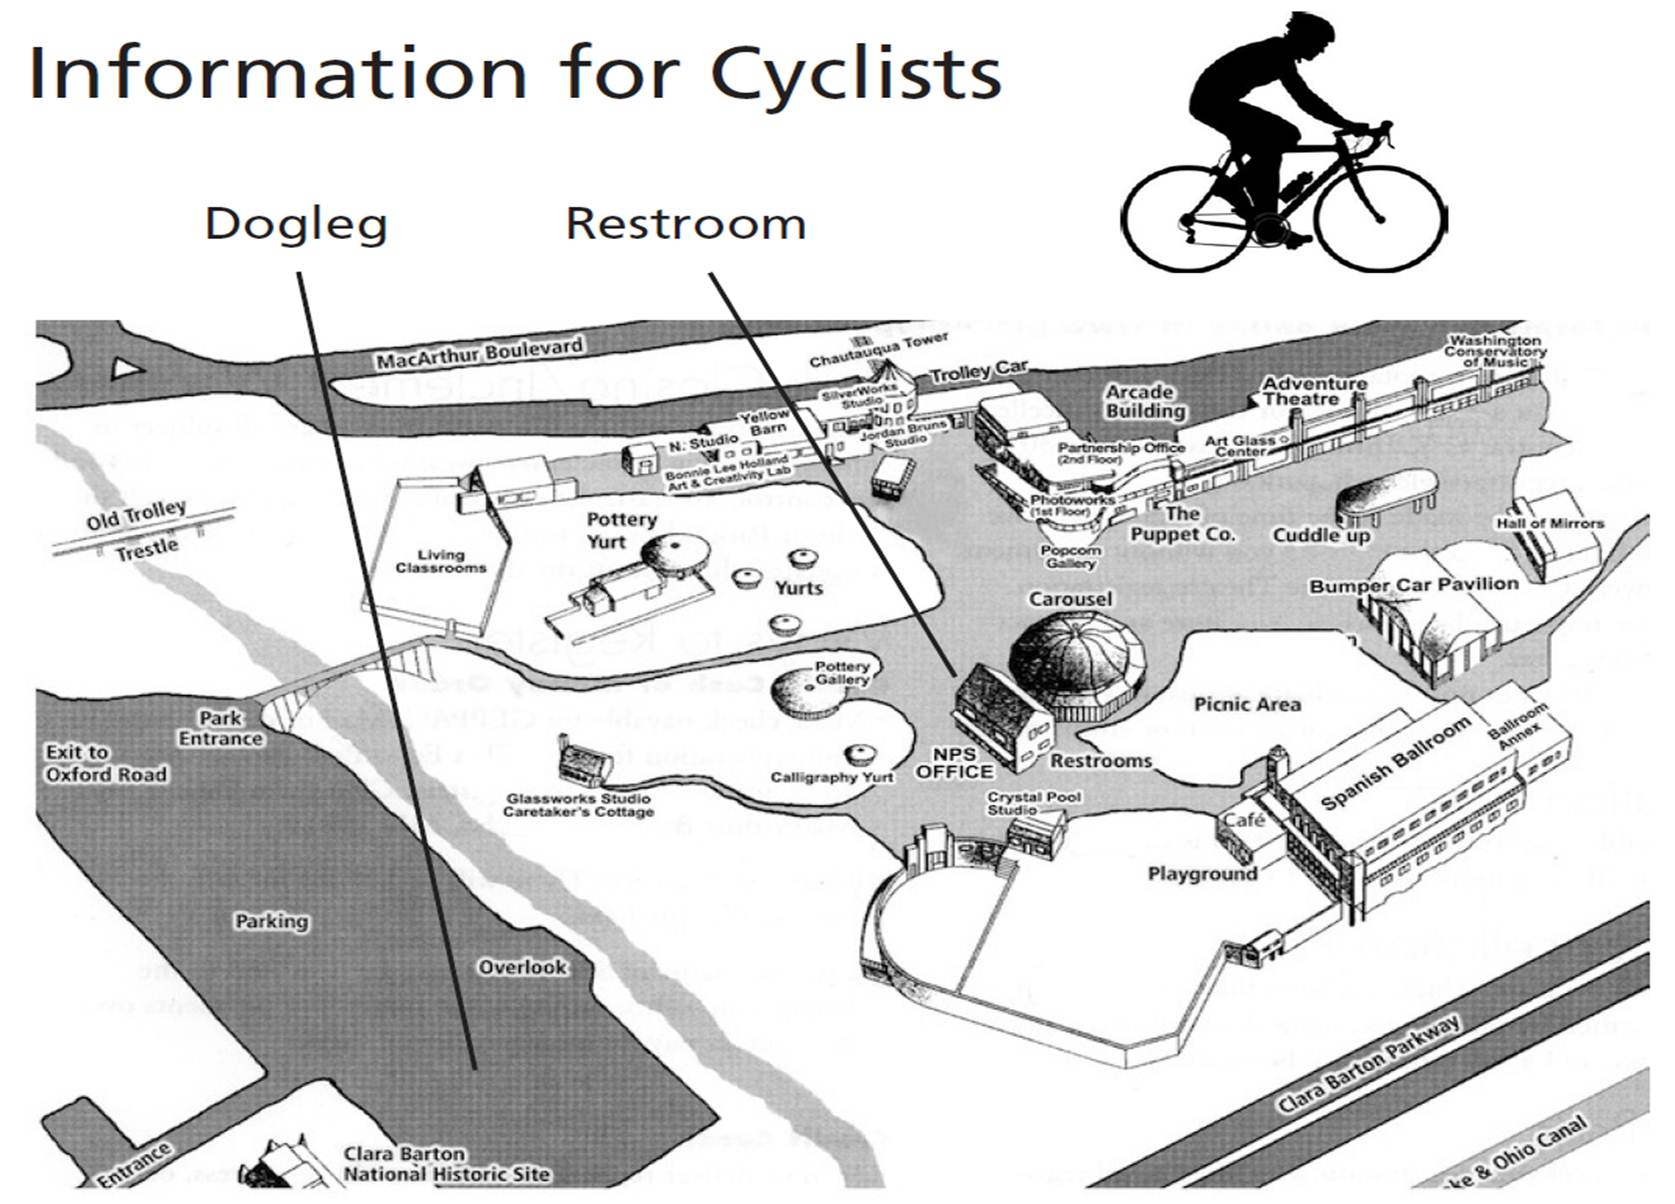 Information for Cyclists photo